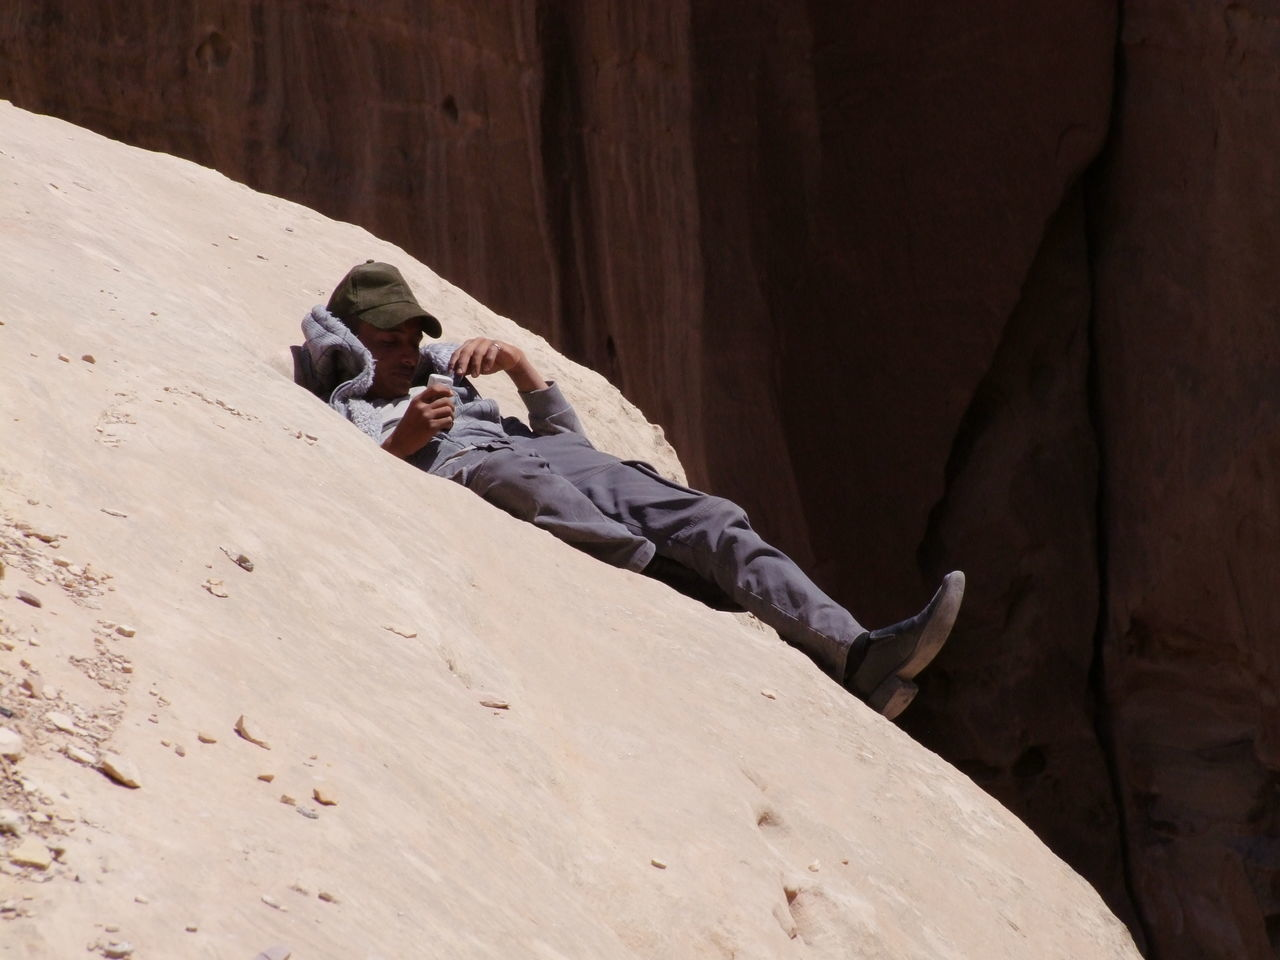 Jordanian Resting in a Hollow in Sandstone Cliff! Bedouin Cliff Edge Composition Dangerous Famous Place Full Frame Jordan Jordanian Leisure Activity One Man Only One Person Outdoor Photography Petra Resting Place Sandstone Rock Formation Sleeping Smooth Rocks Sunlight And Shade Tourist Attraction  Tourist Destination Unusual Waiting